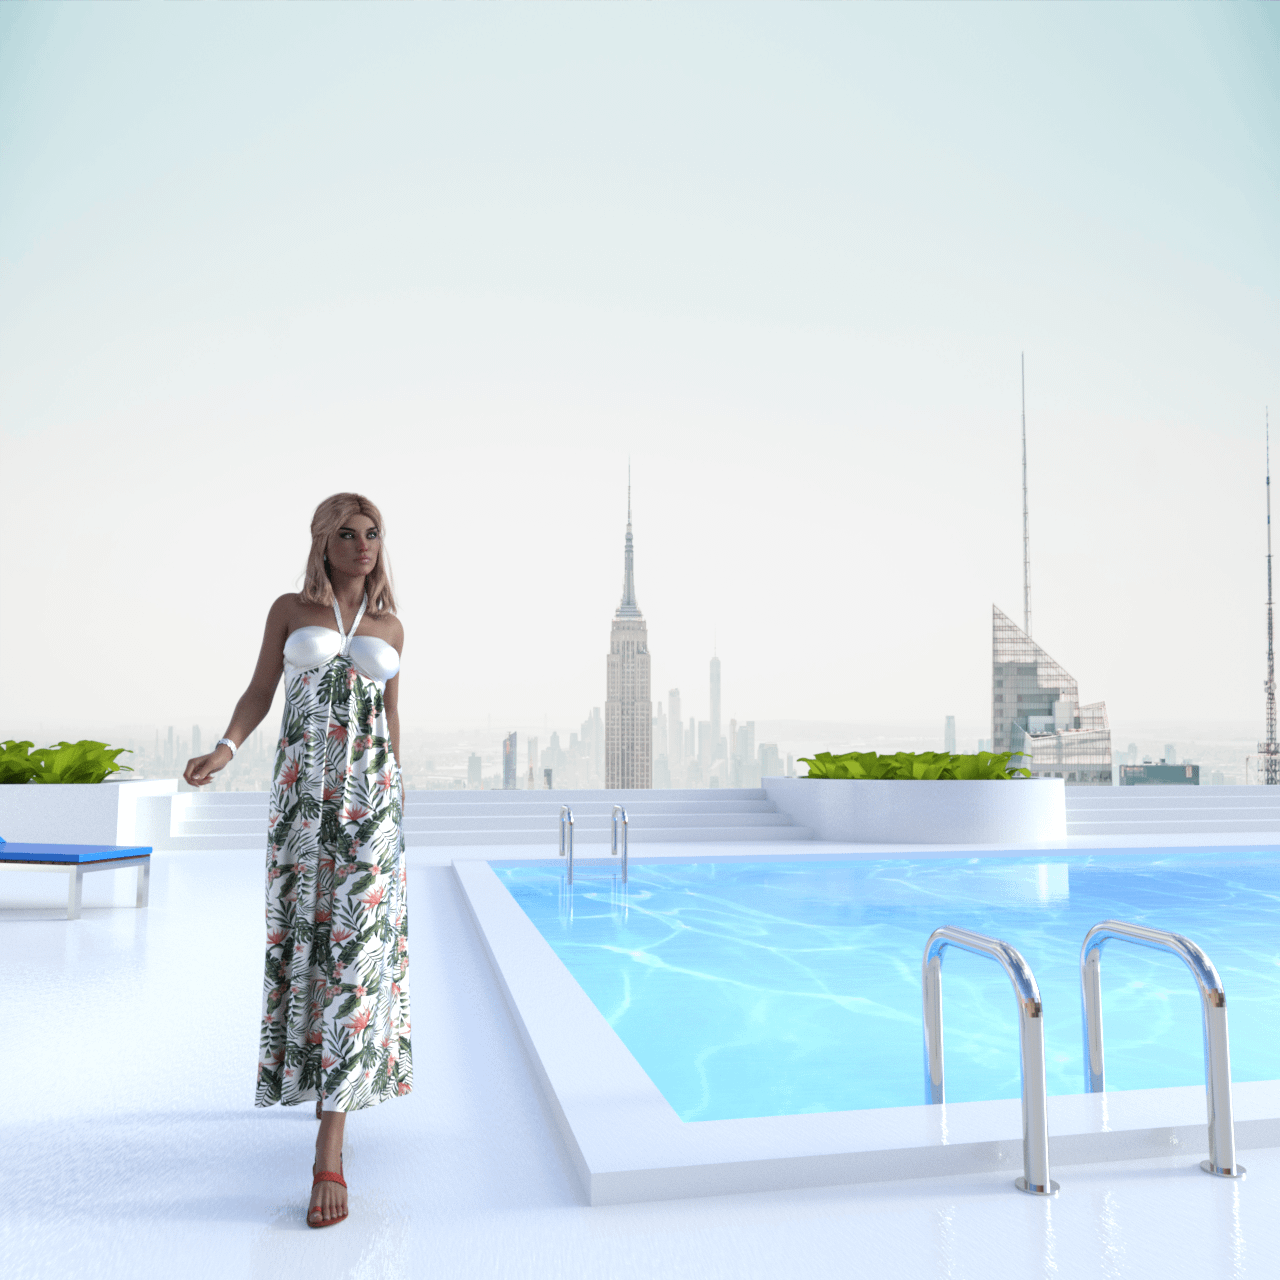 daz dforce dress with clothing simulation applied